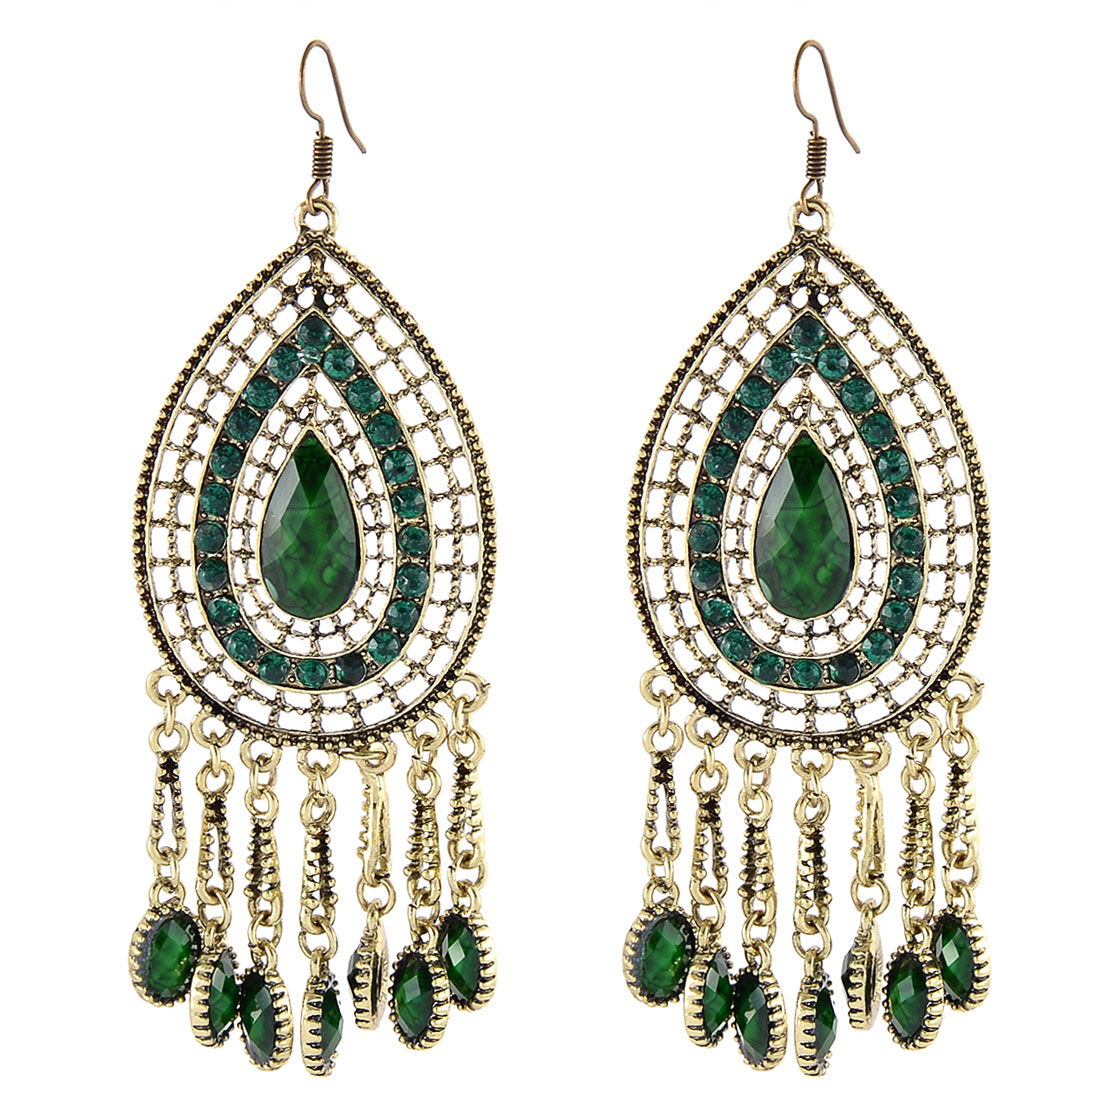 Lady Alloy Vintage Waterdrop Shaped Rhinestone Mosaic Tassels Hook Earring Green